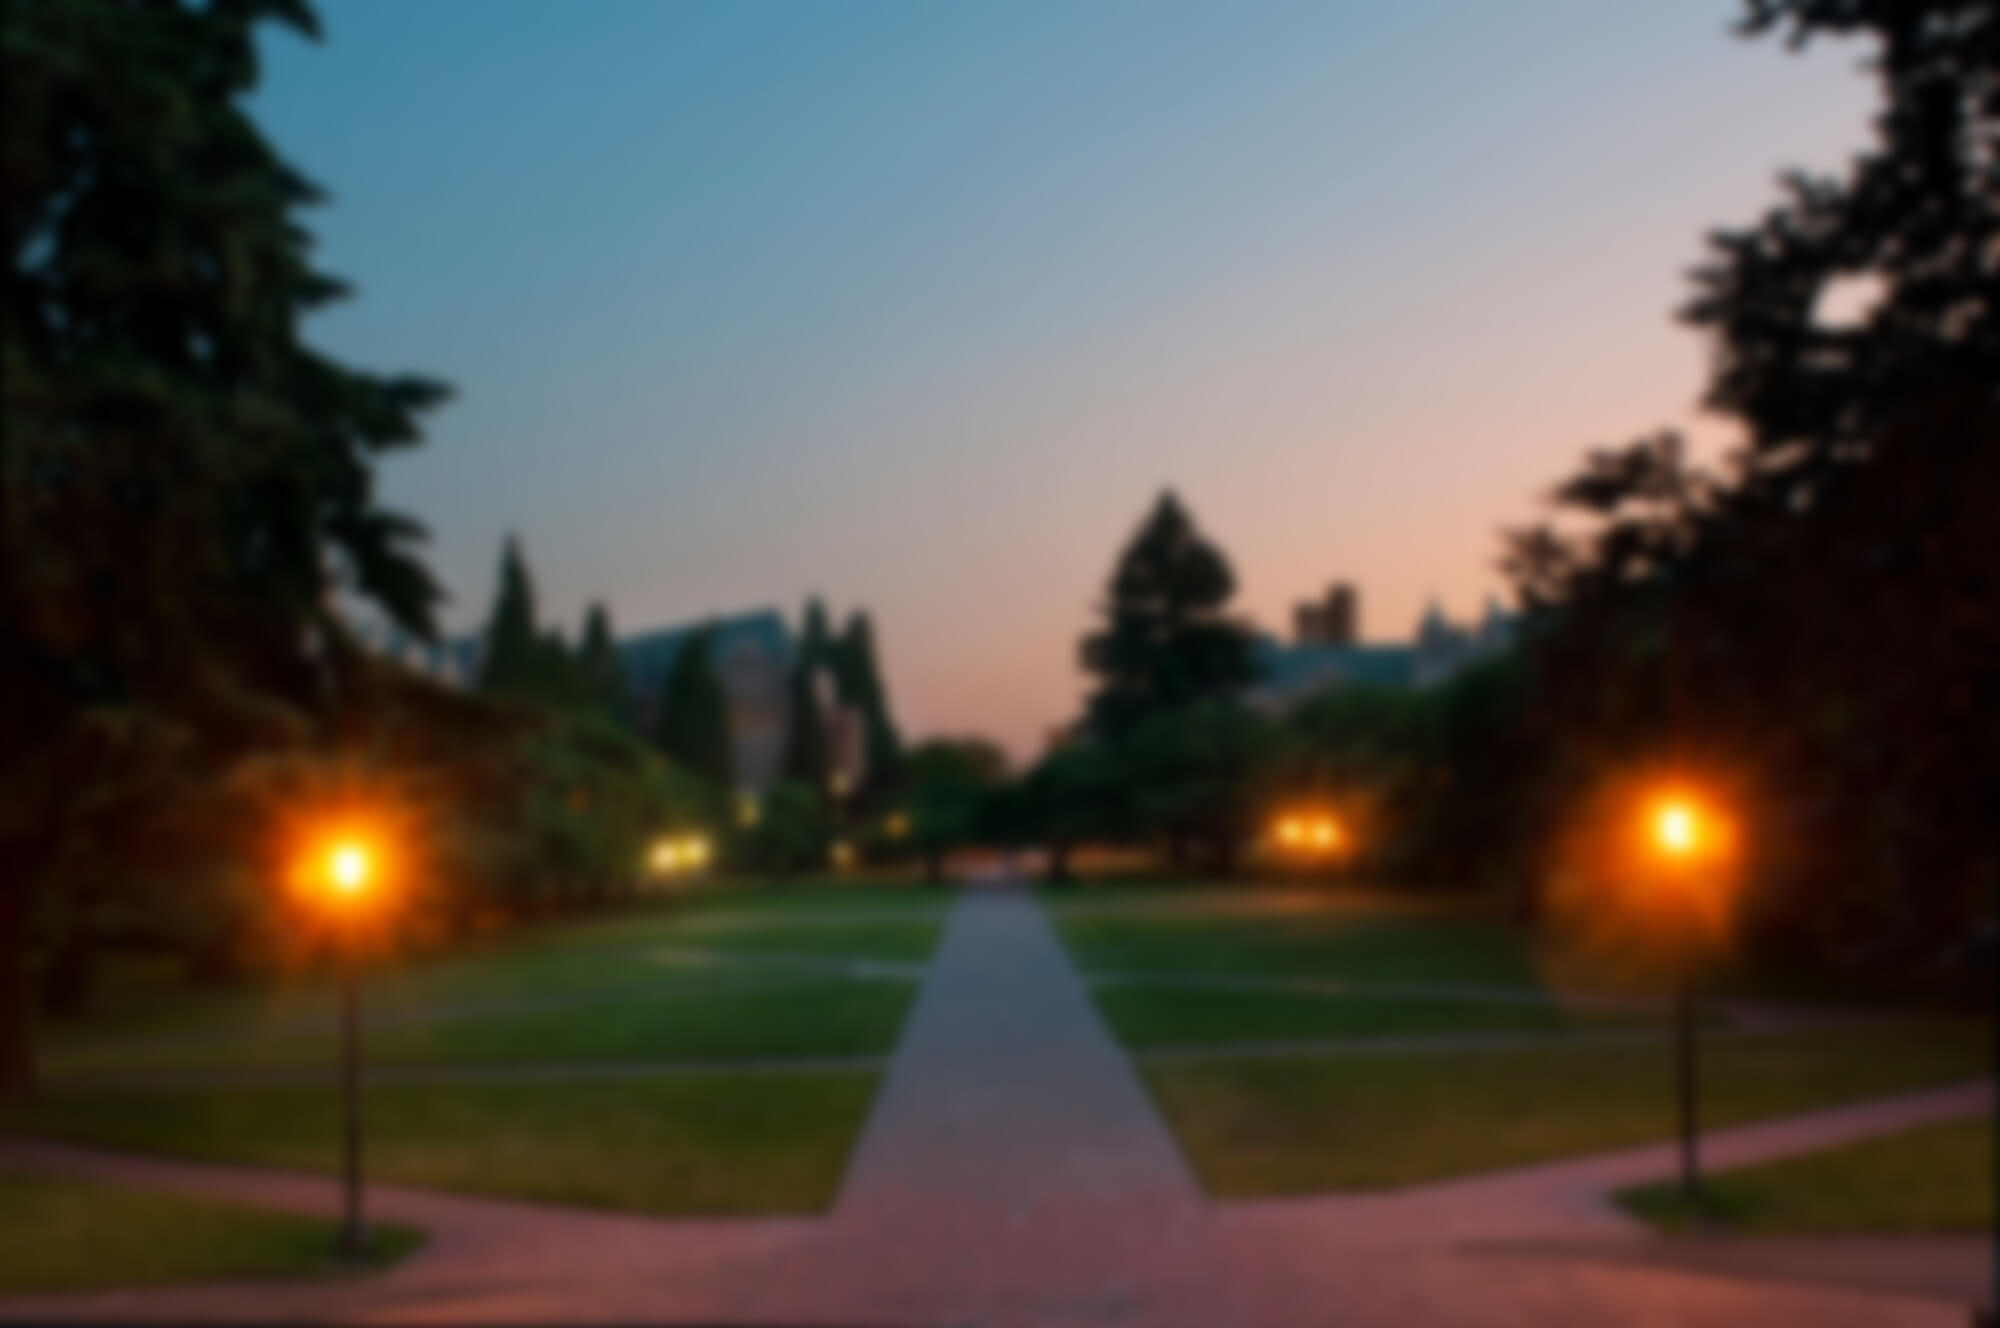 UW Liberal Arts Quad at sunset